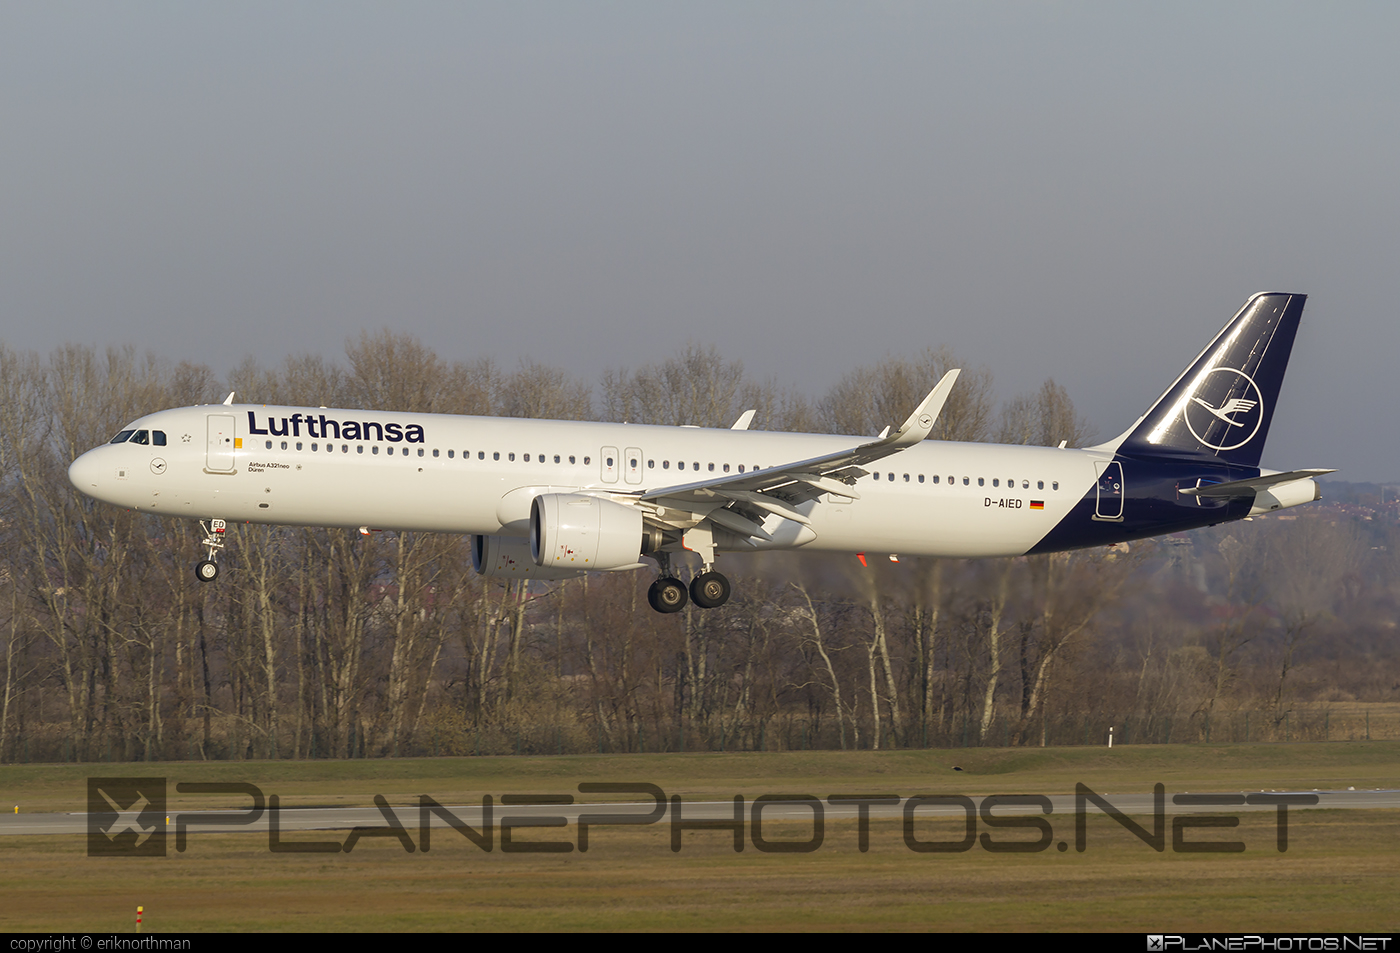 Airbus A321-271NX - D-AIED operated by Lufthansa #a320family #a321 #a321neo #airbus #airbus321 #airbus321lr #lufthansa